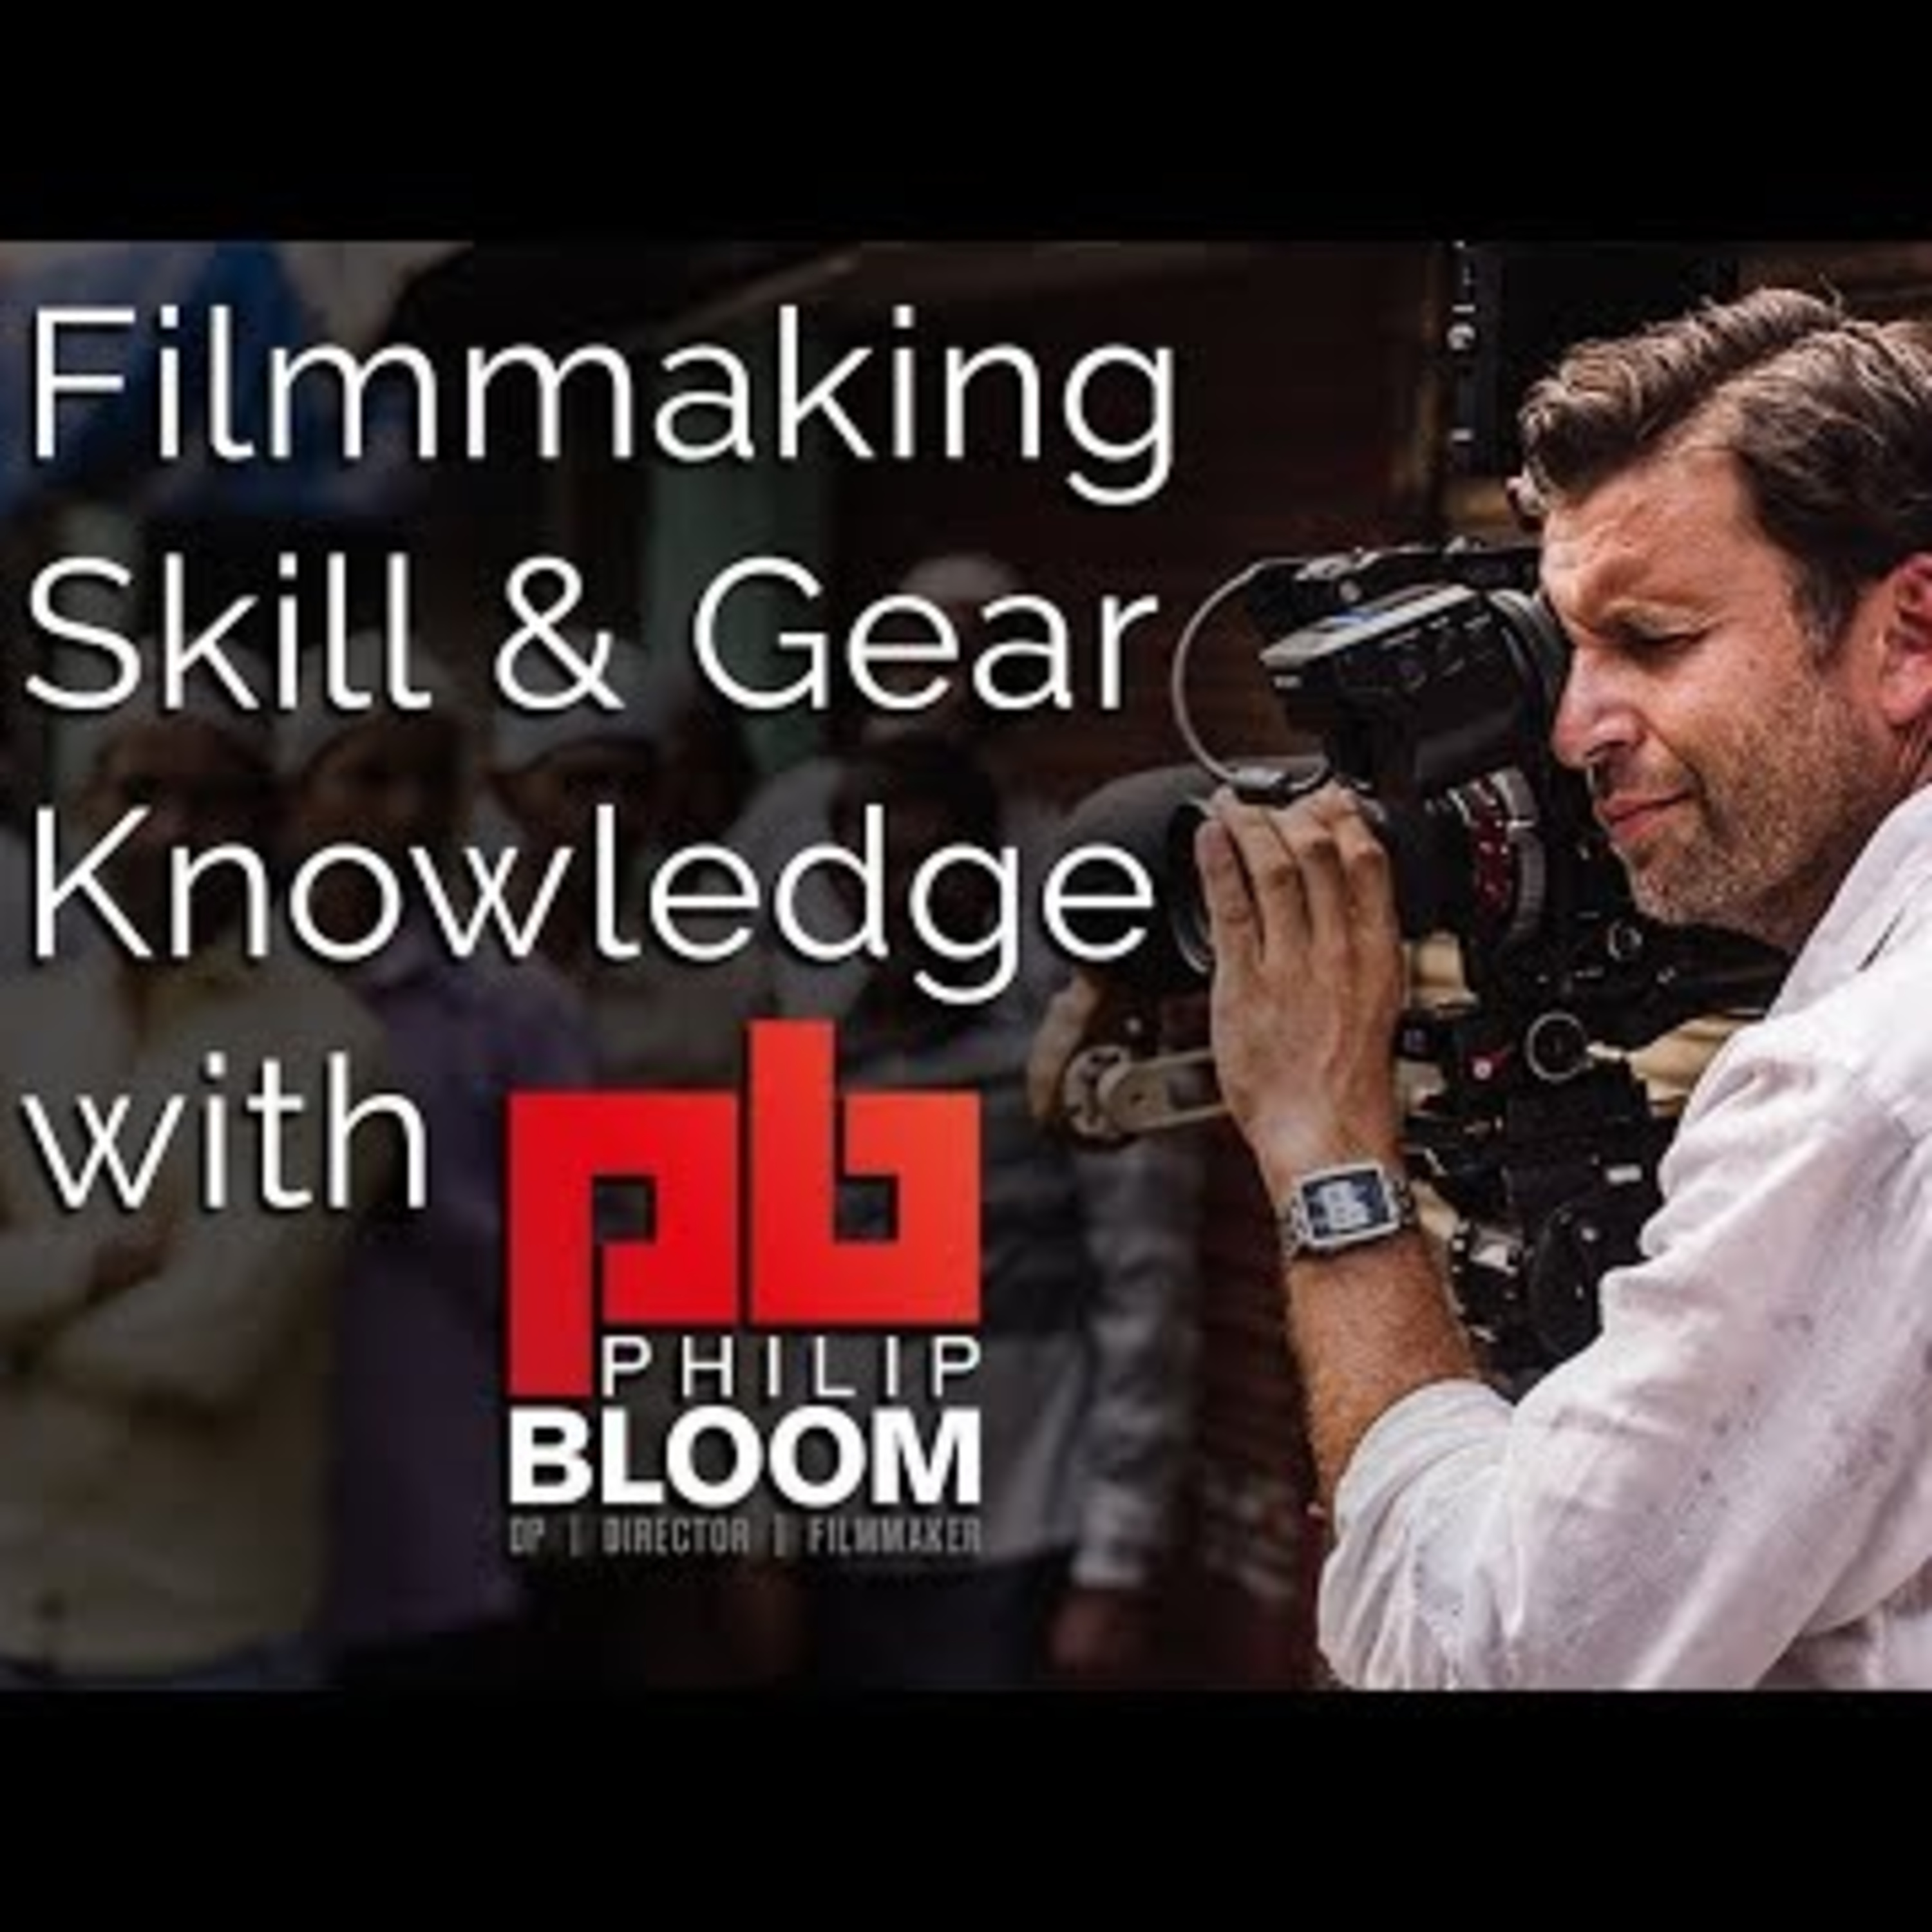 Filmmaking Skill and Gear Knowledge with Philip Bloom - Filmmaking Times Live #60